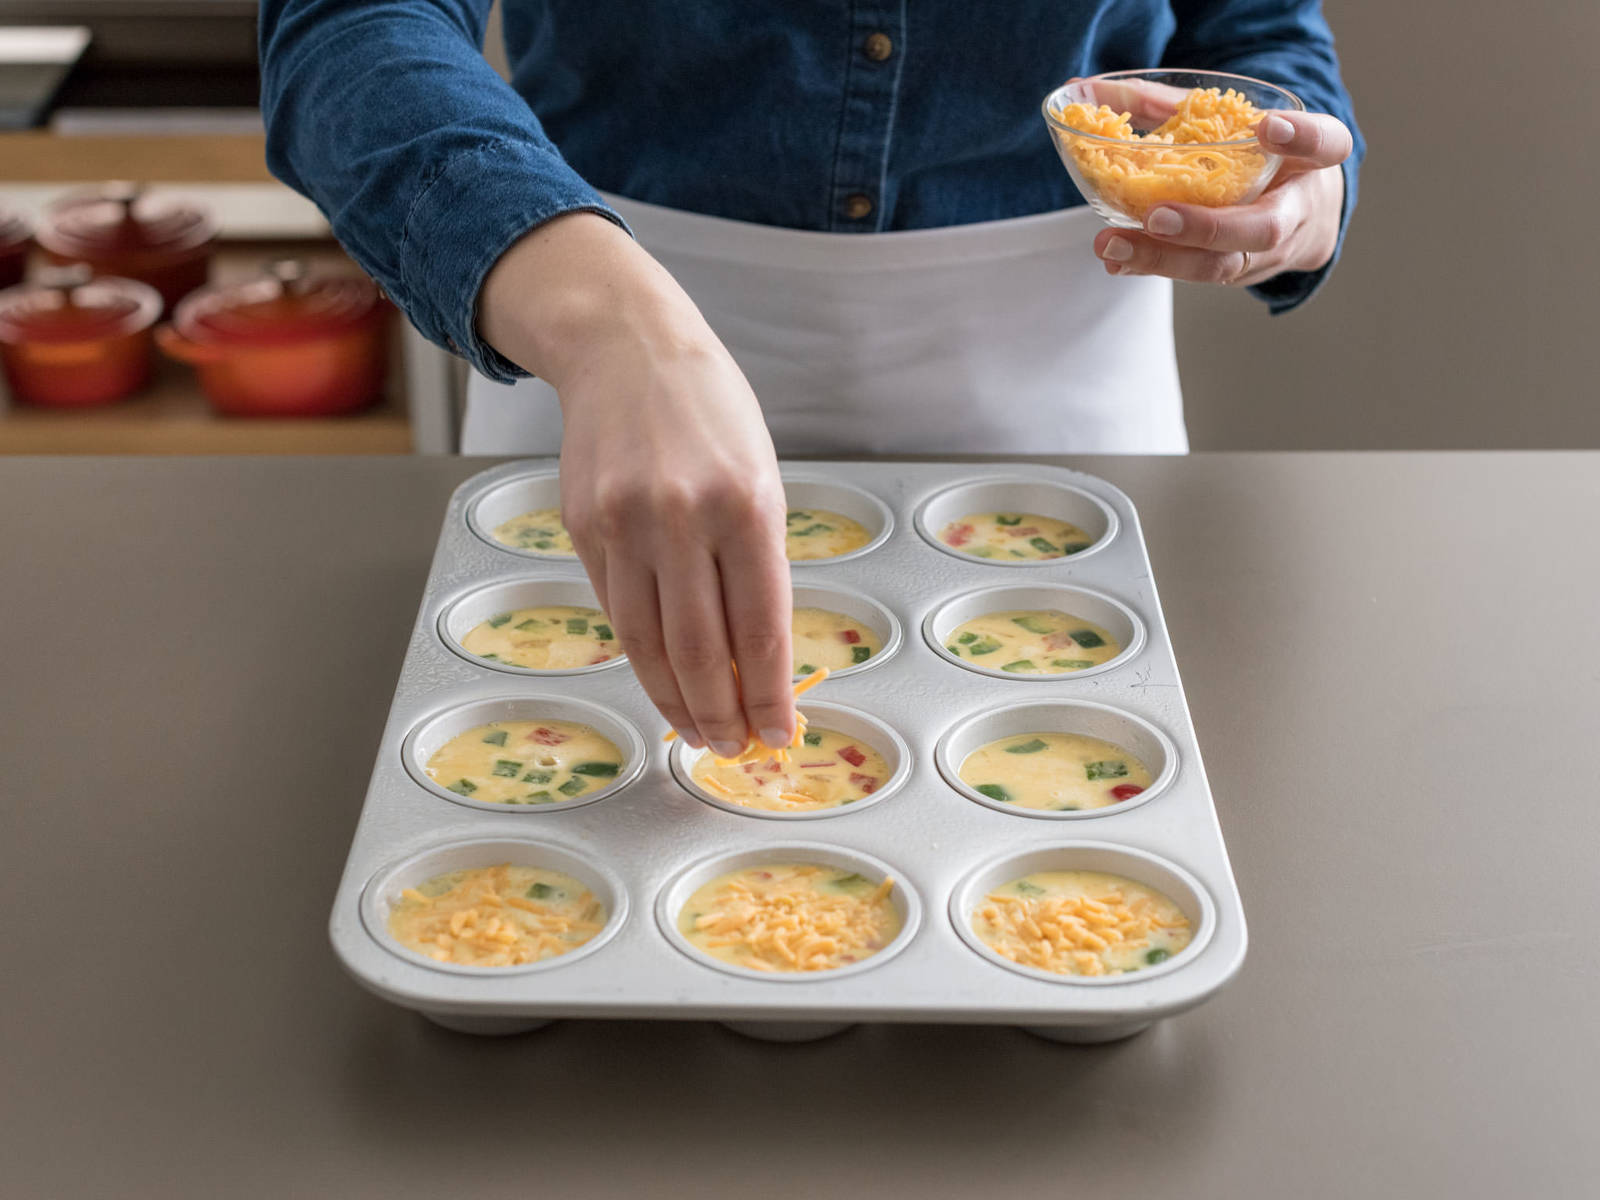 Pour egg mixture into cups, filling each three-quarters of the way full. Sprinkle with cheese.